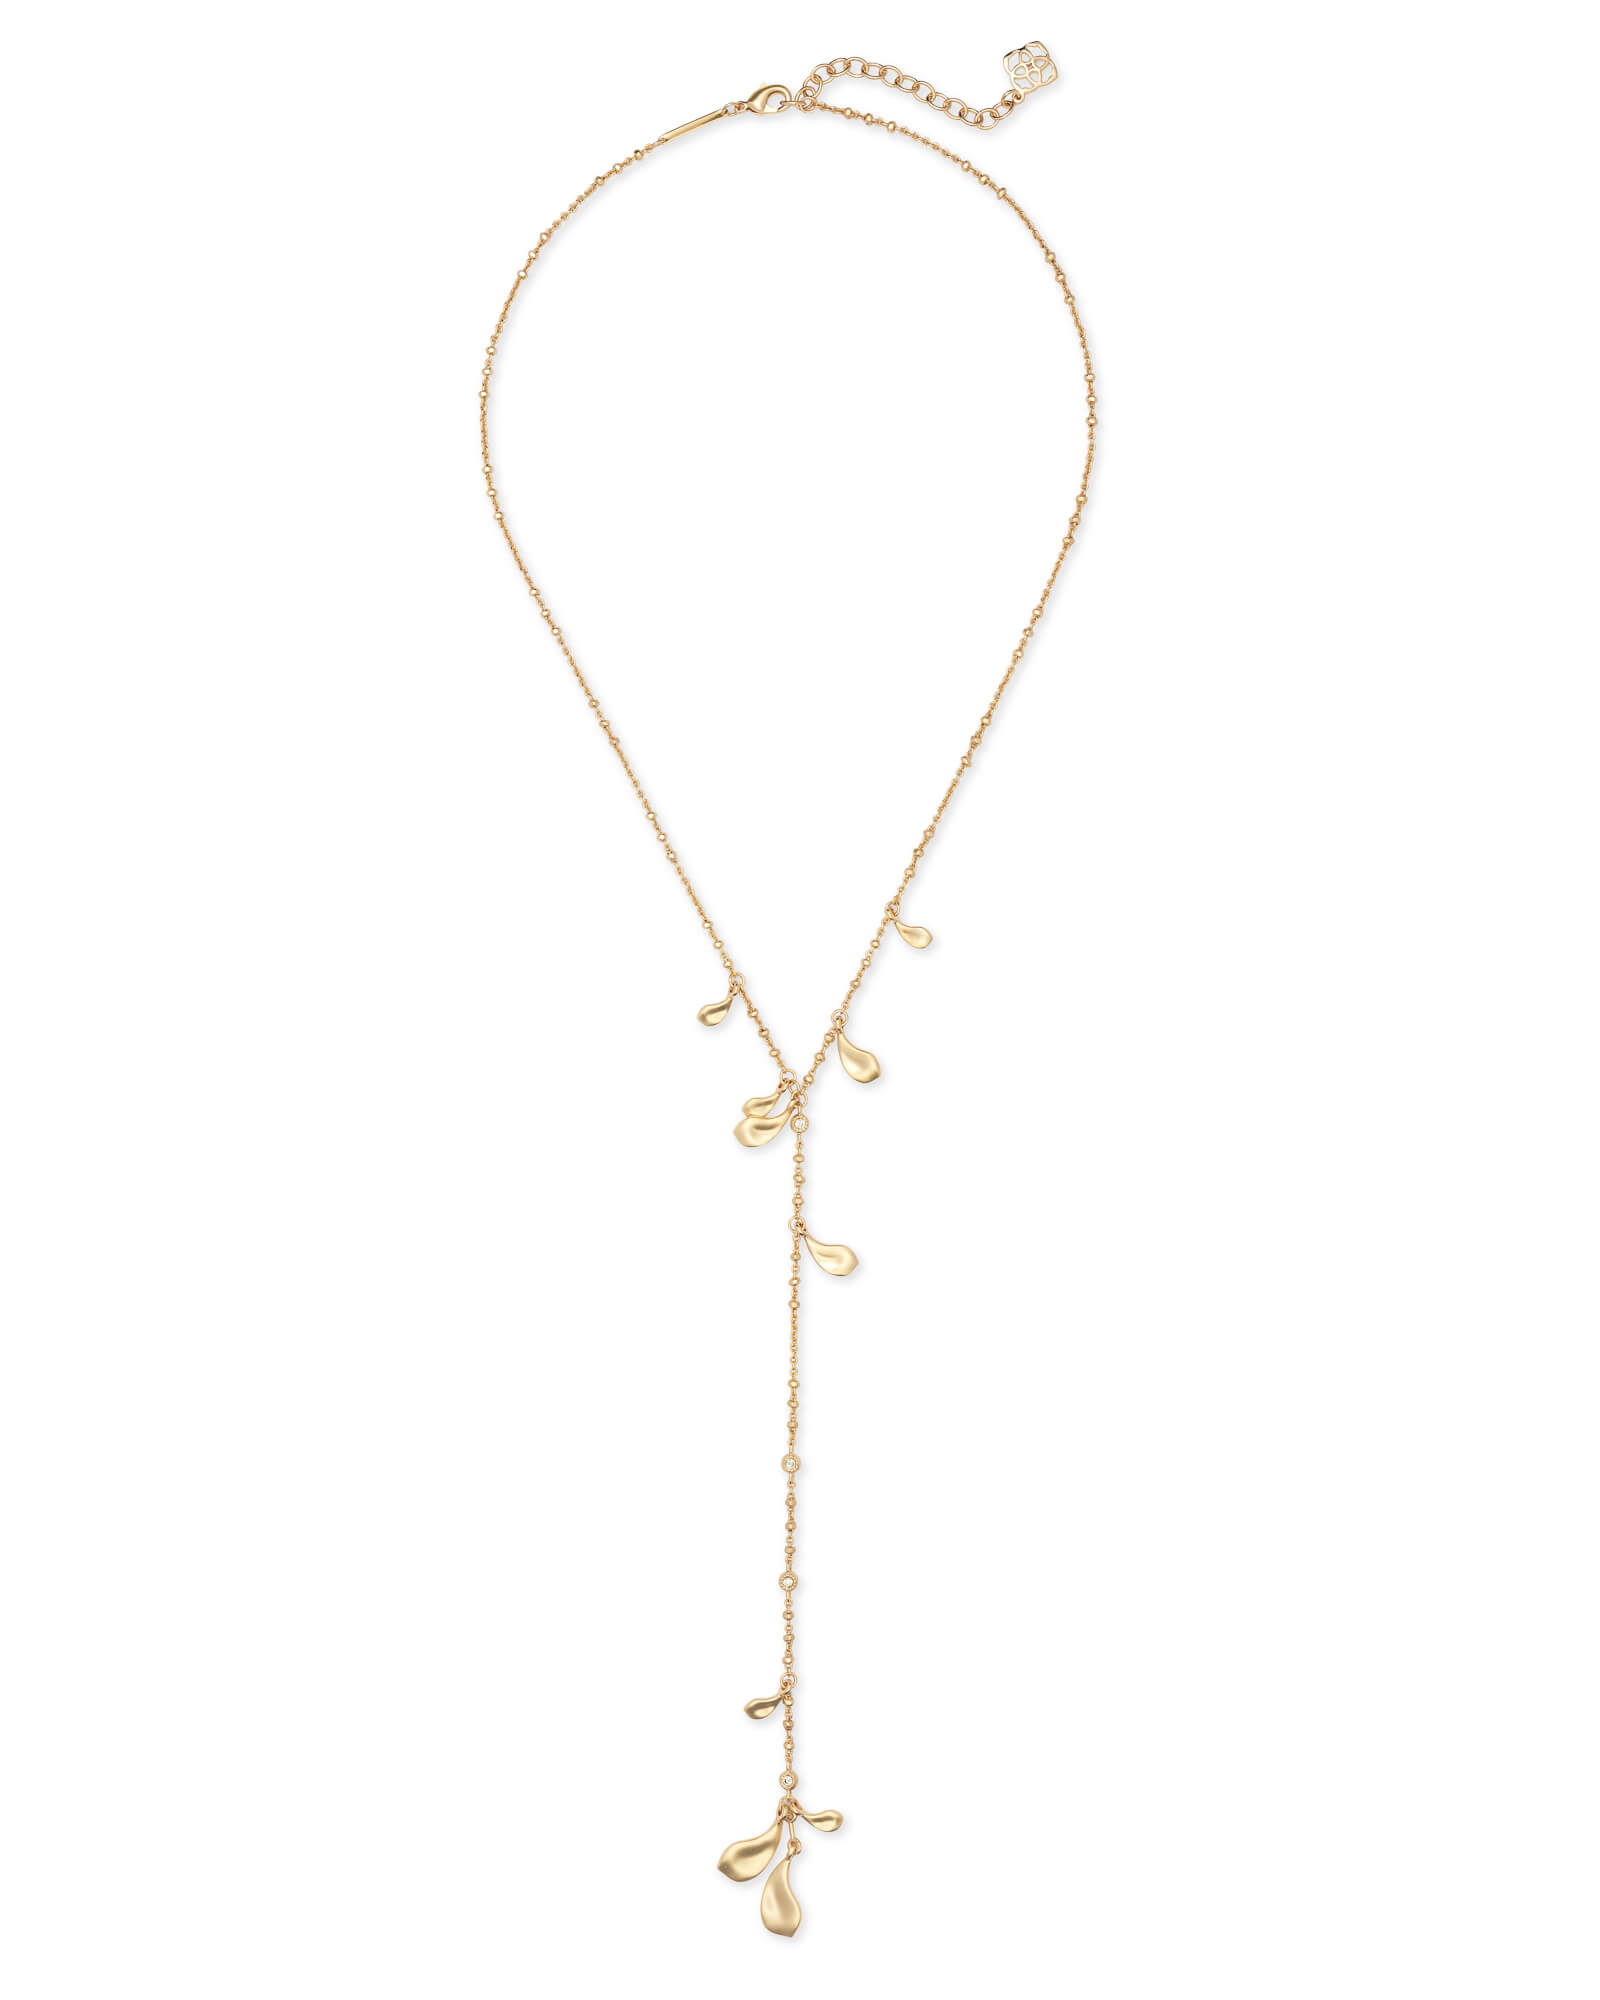 Quincy Y Necklace in Gold